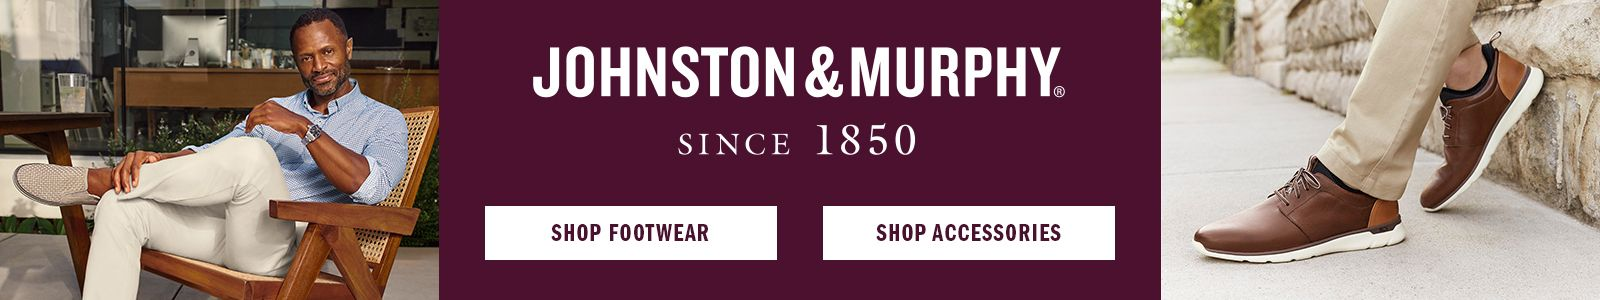 Johnston and Murphy Since 1850